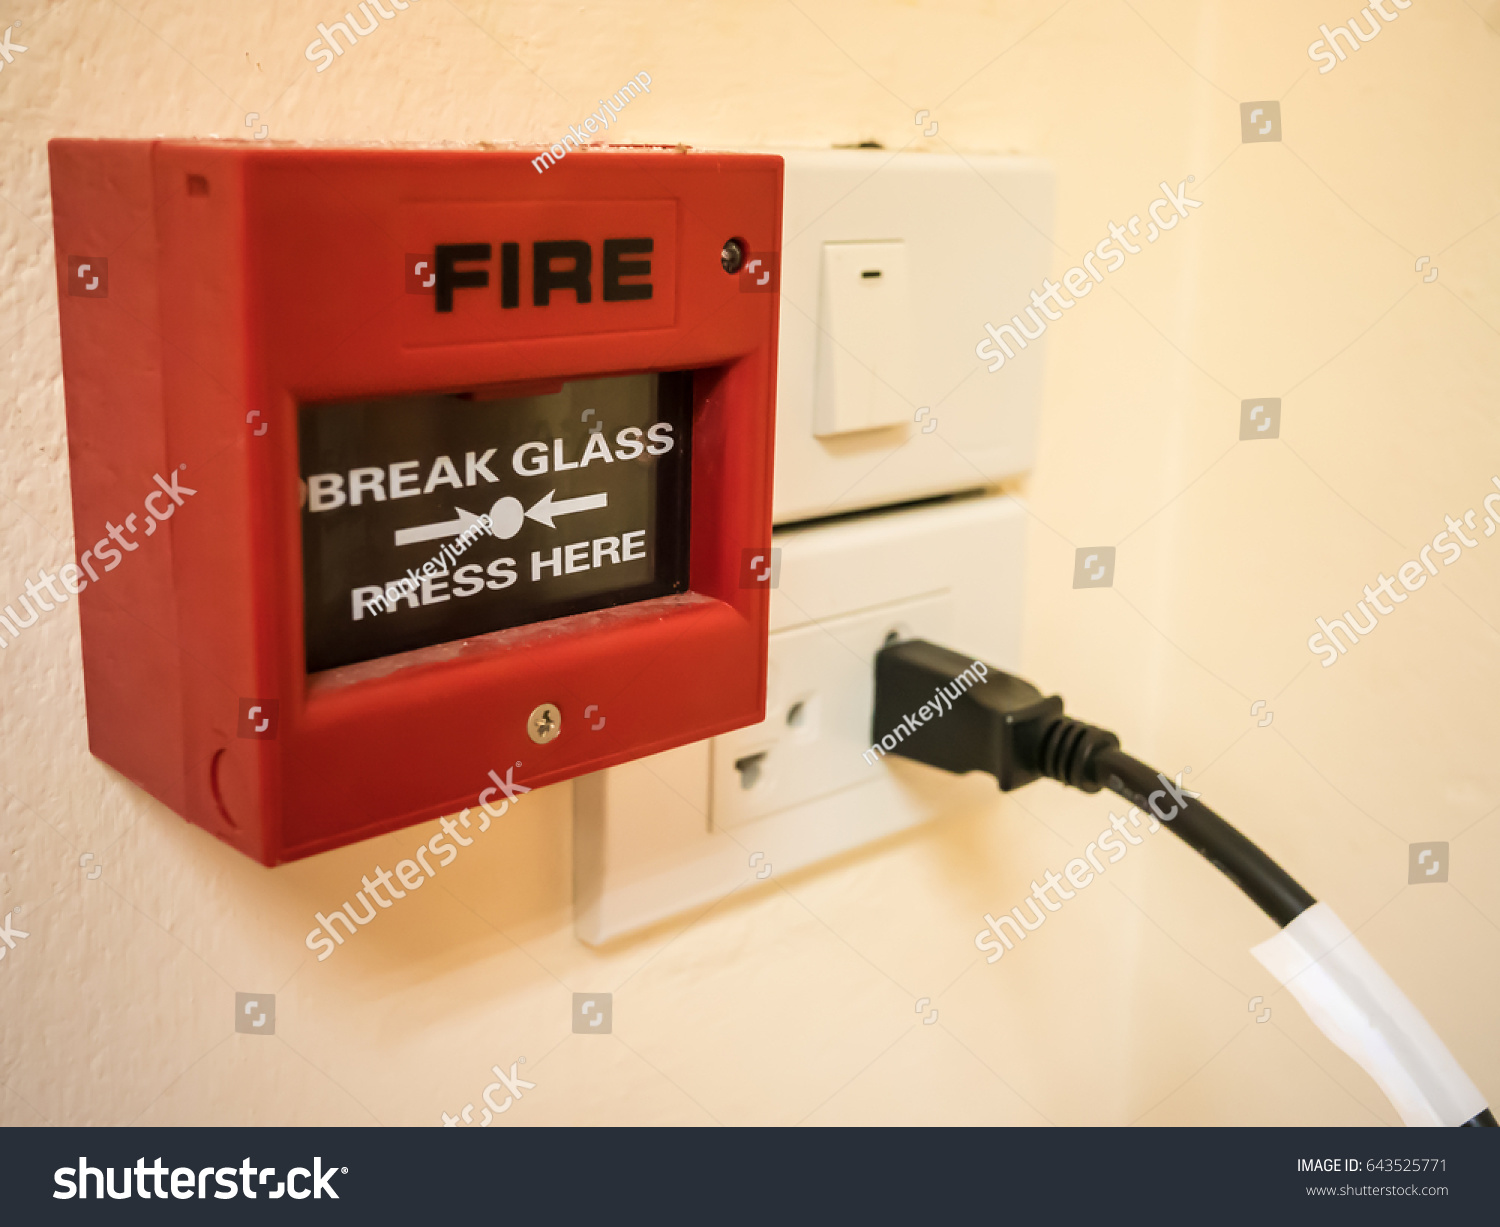 hight resolution of fire alarm install near a swith and plug